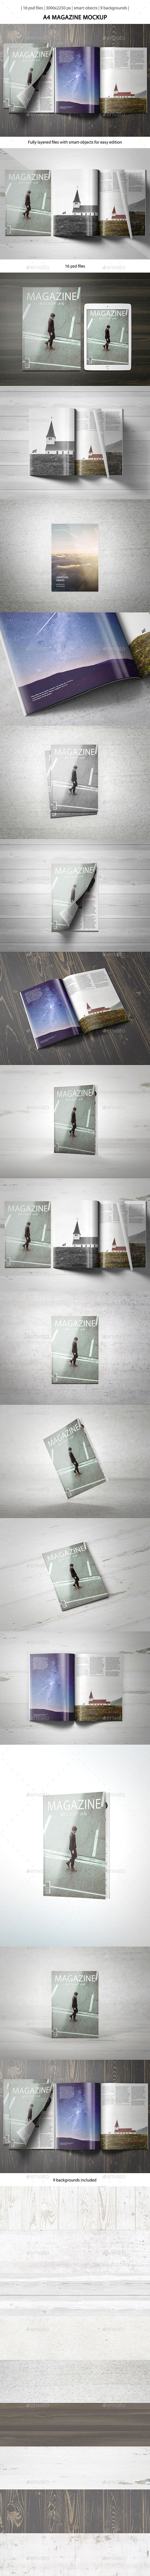 GraphicRiver A4 Magazine Mockup 9992209